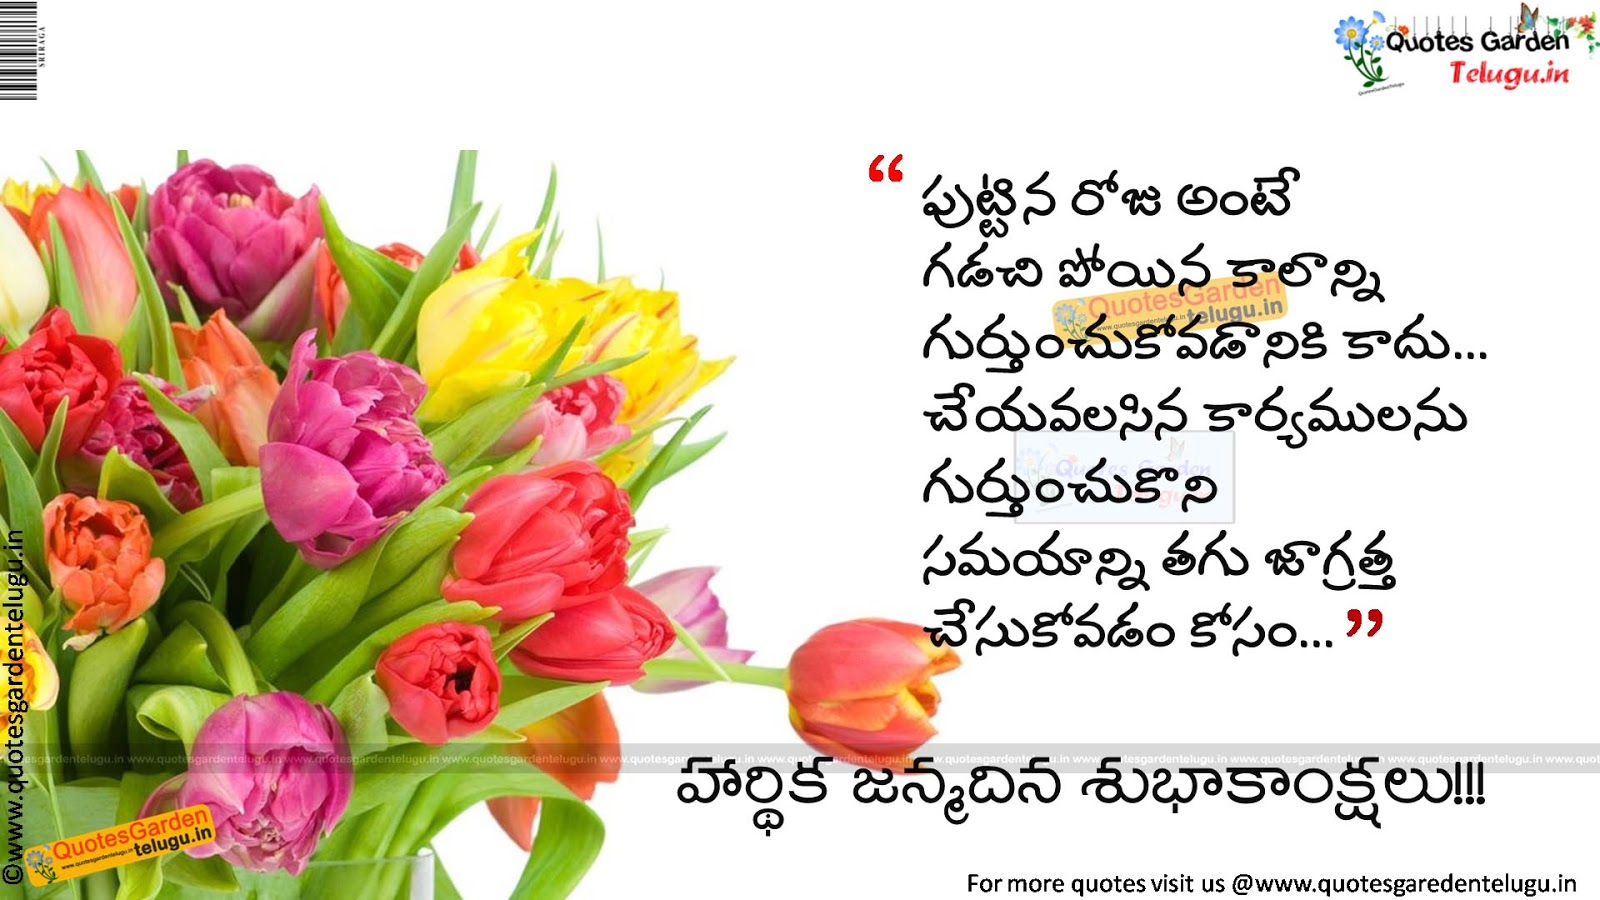 78 BIRTHDAY WISHES QUOTES TELUGU, QUOTES BIRTHDAY TELUGU WISHES